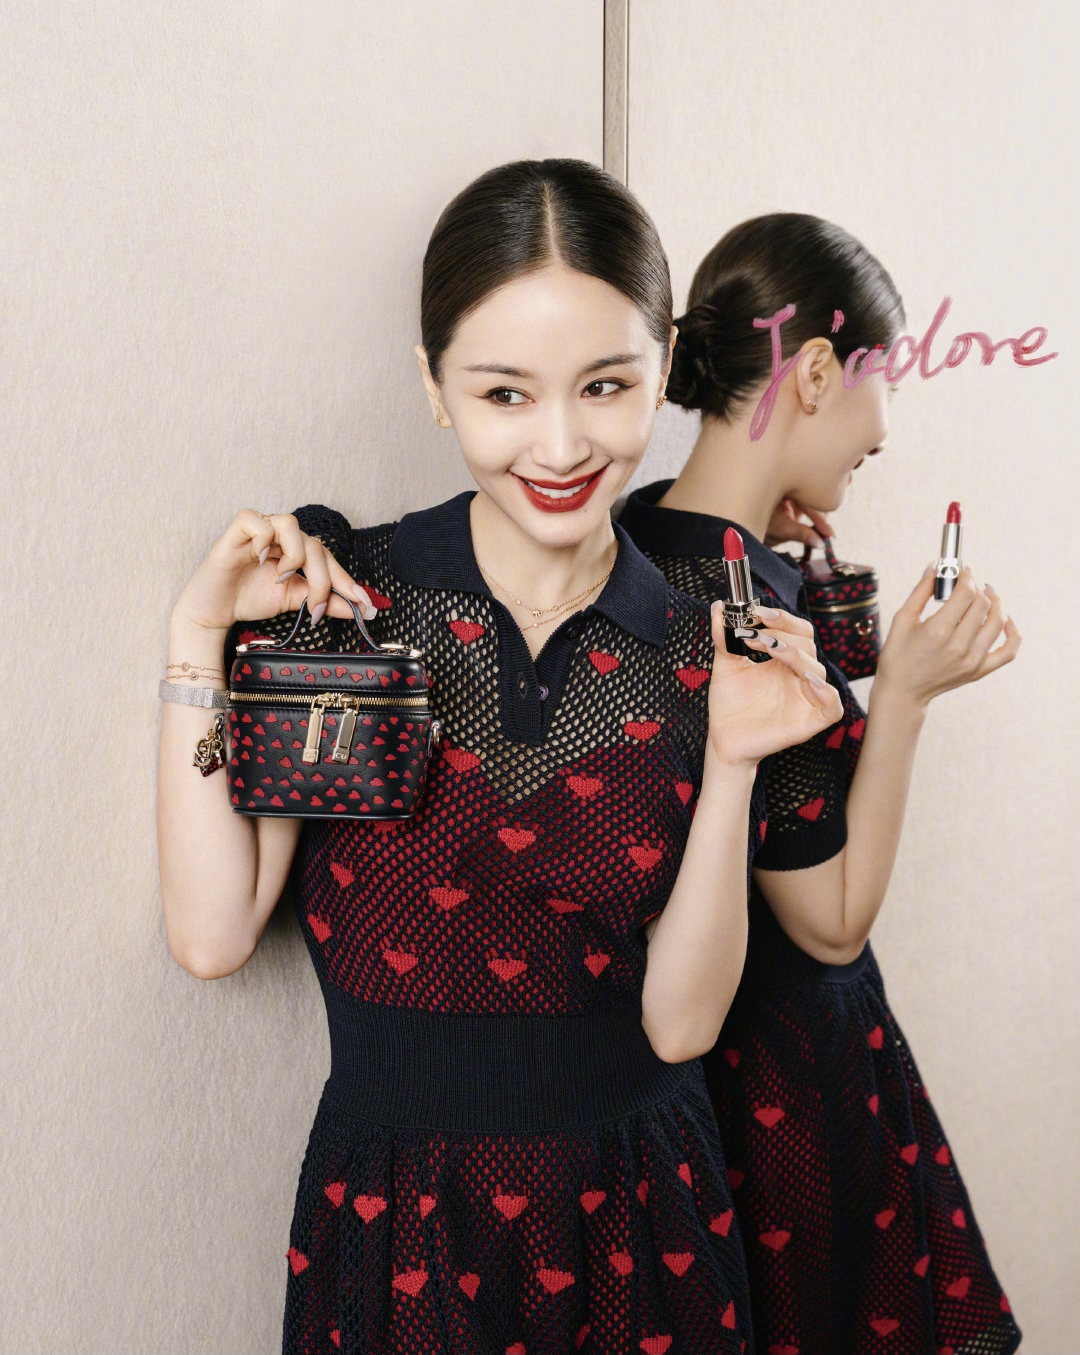 Dior's cosmetic China ambassador Wang Ziwen showcasing items from the brand's 520 capsule.